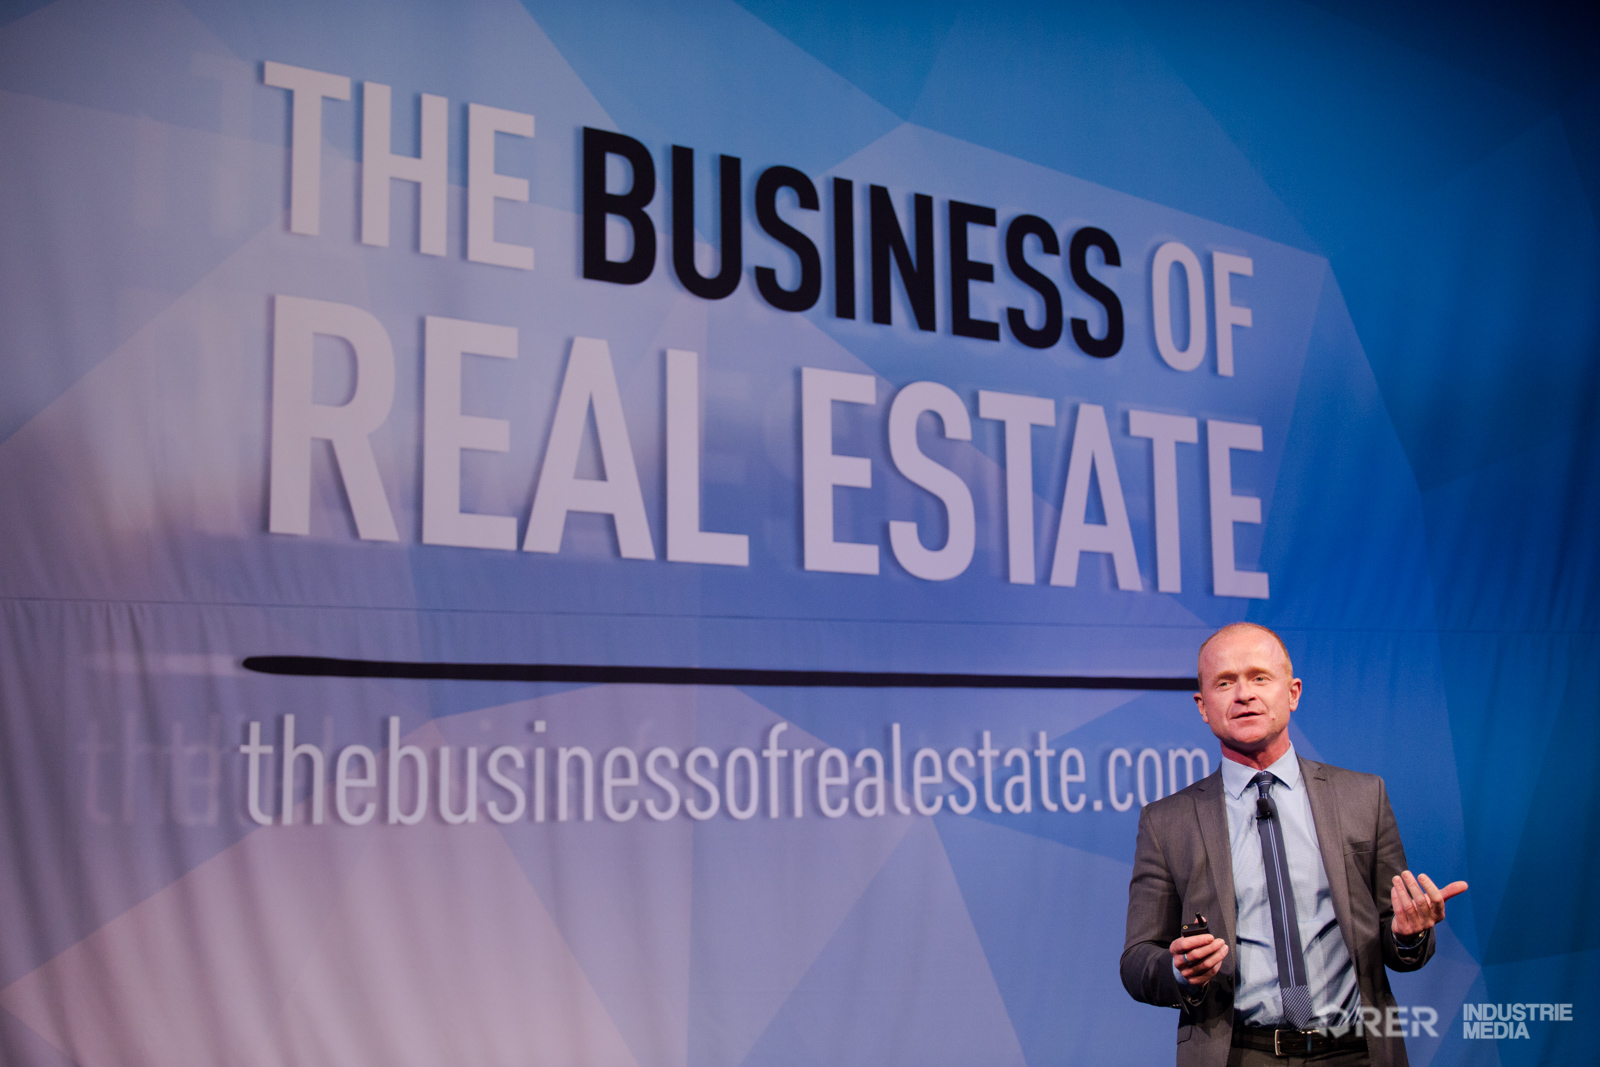 https://www.thebusinessofrealestate.com.au/wp-content/uploads/2016/09/RER_BUSINESS_OF_REAL_ESTATE_DAY_2-91.jpg